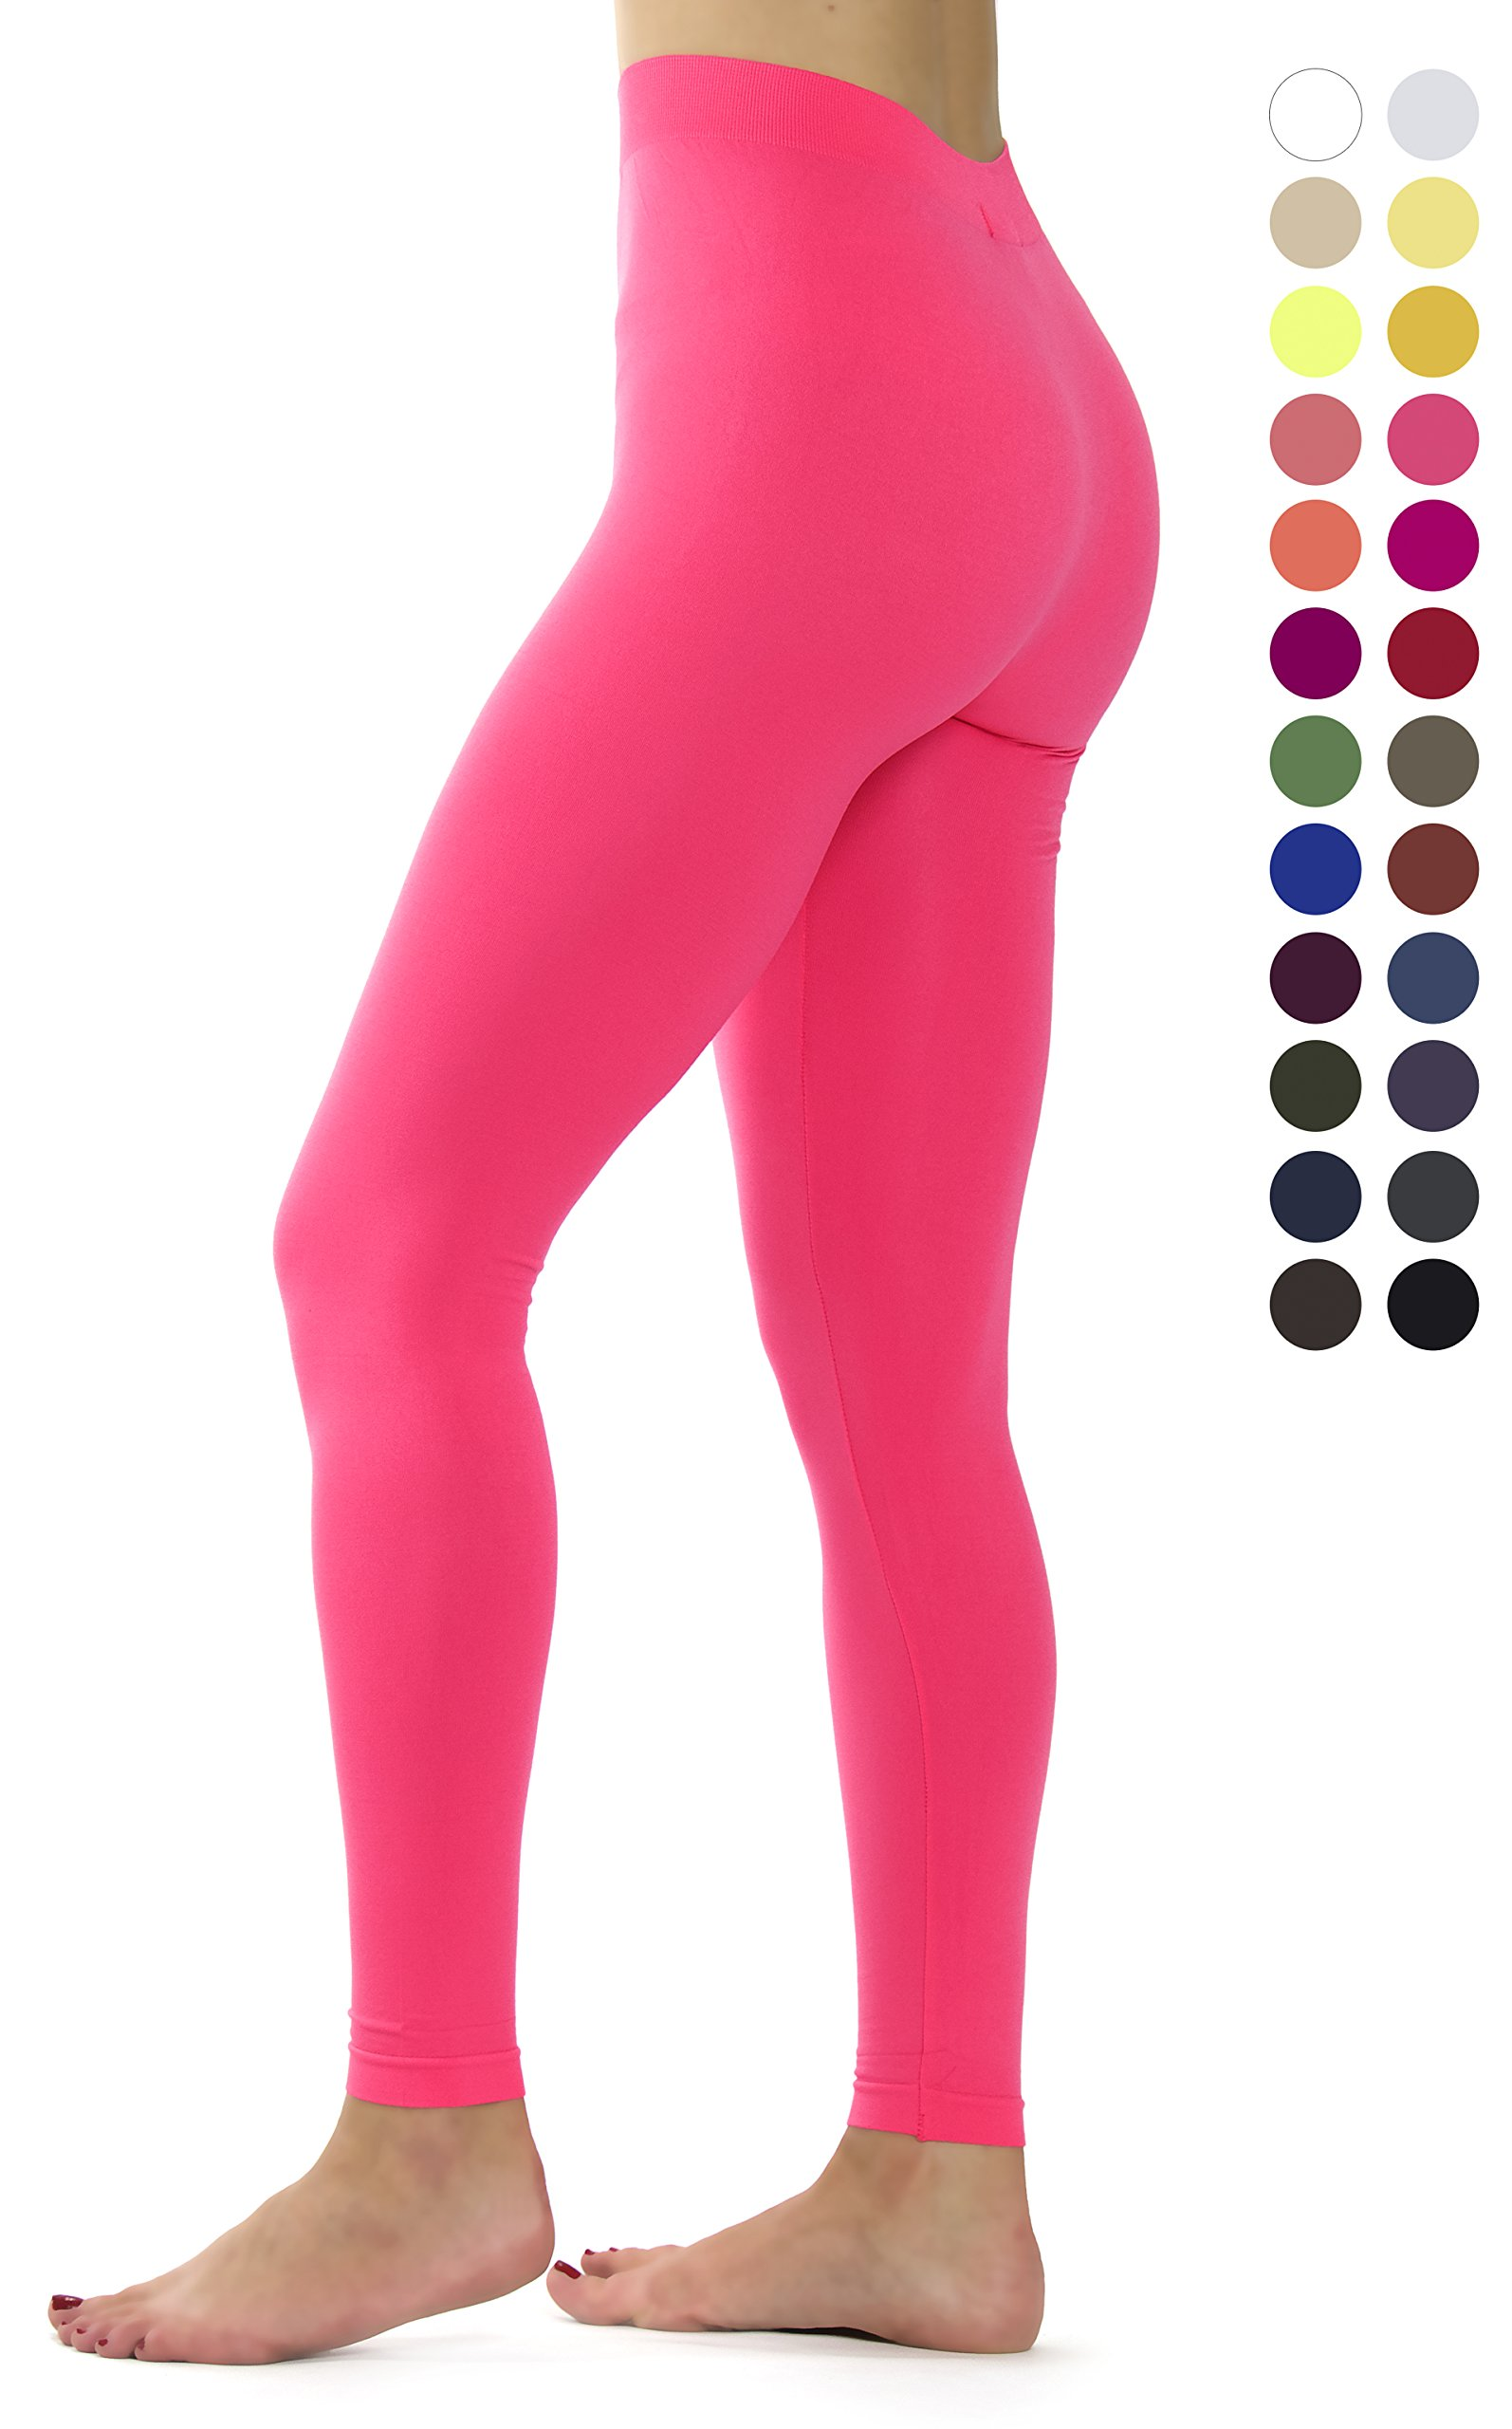 Ylluo Leggings High Waist Pants Buttery Soft Fleece and Non Fleece Tights Regular and Plus Size (S/M/L (US Size 2-10), Neon Fuchsia)